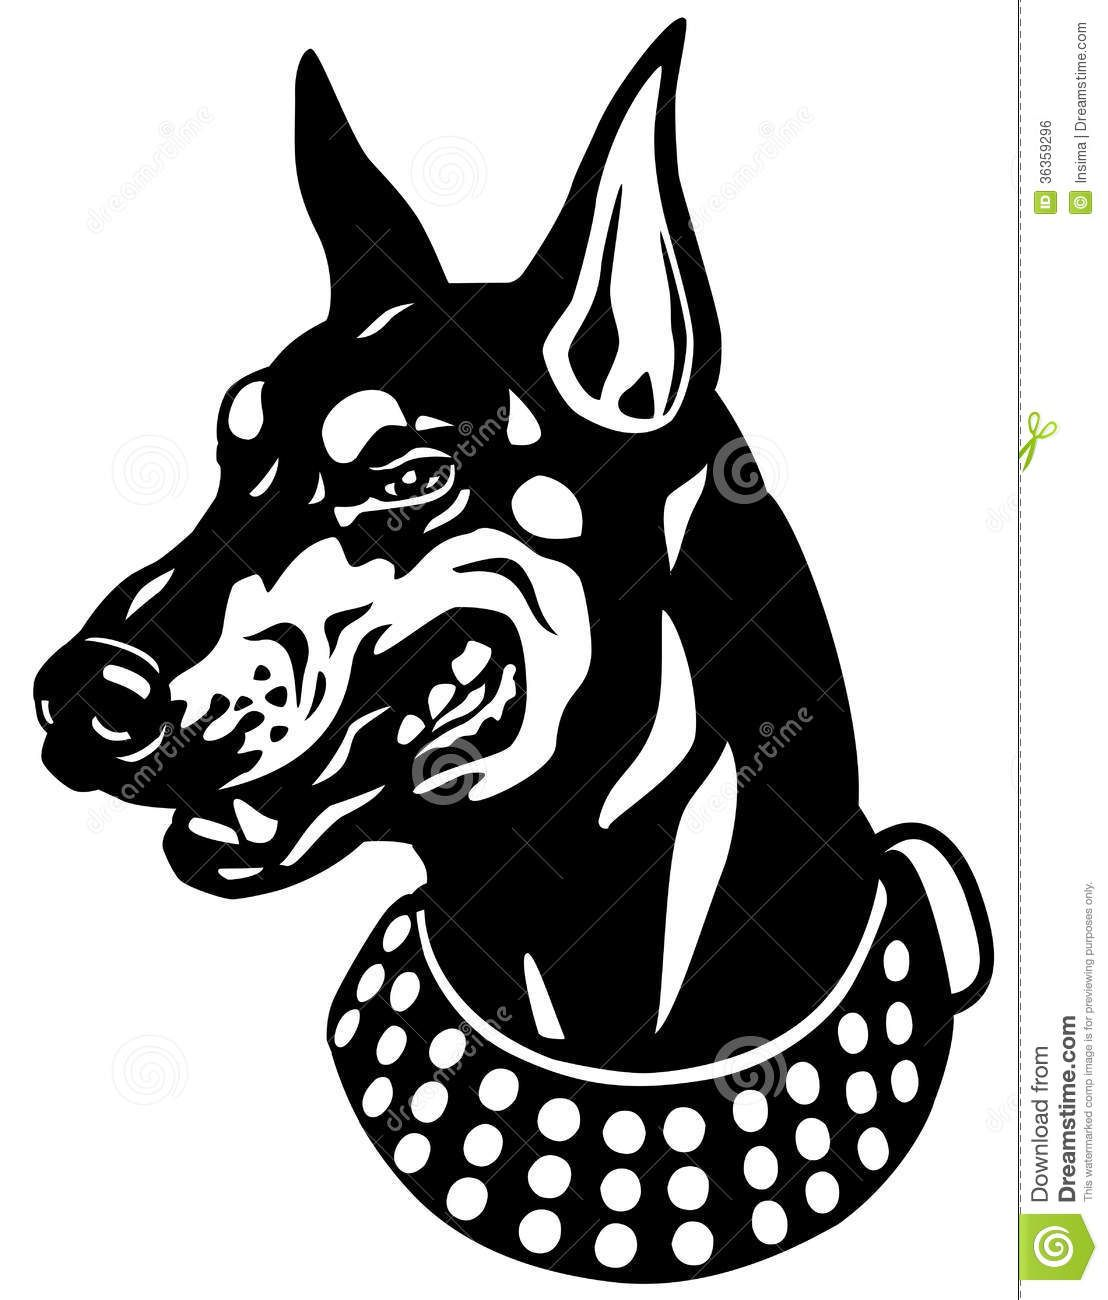 Clipart doberman svg transparent stock Gallery for - snarling dog clip art | Projects to Try in 2019 ... svg transparent stock